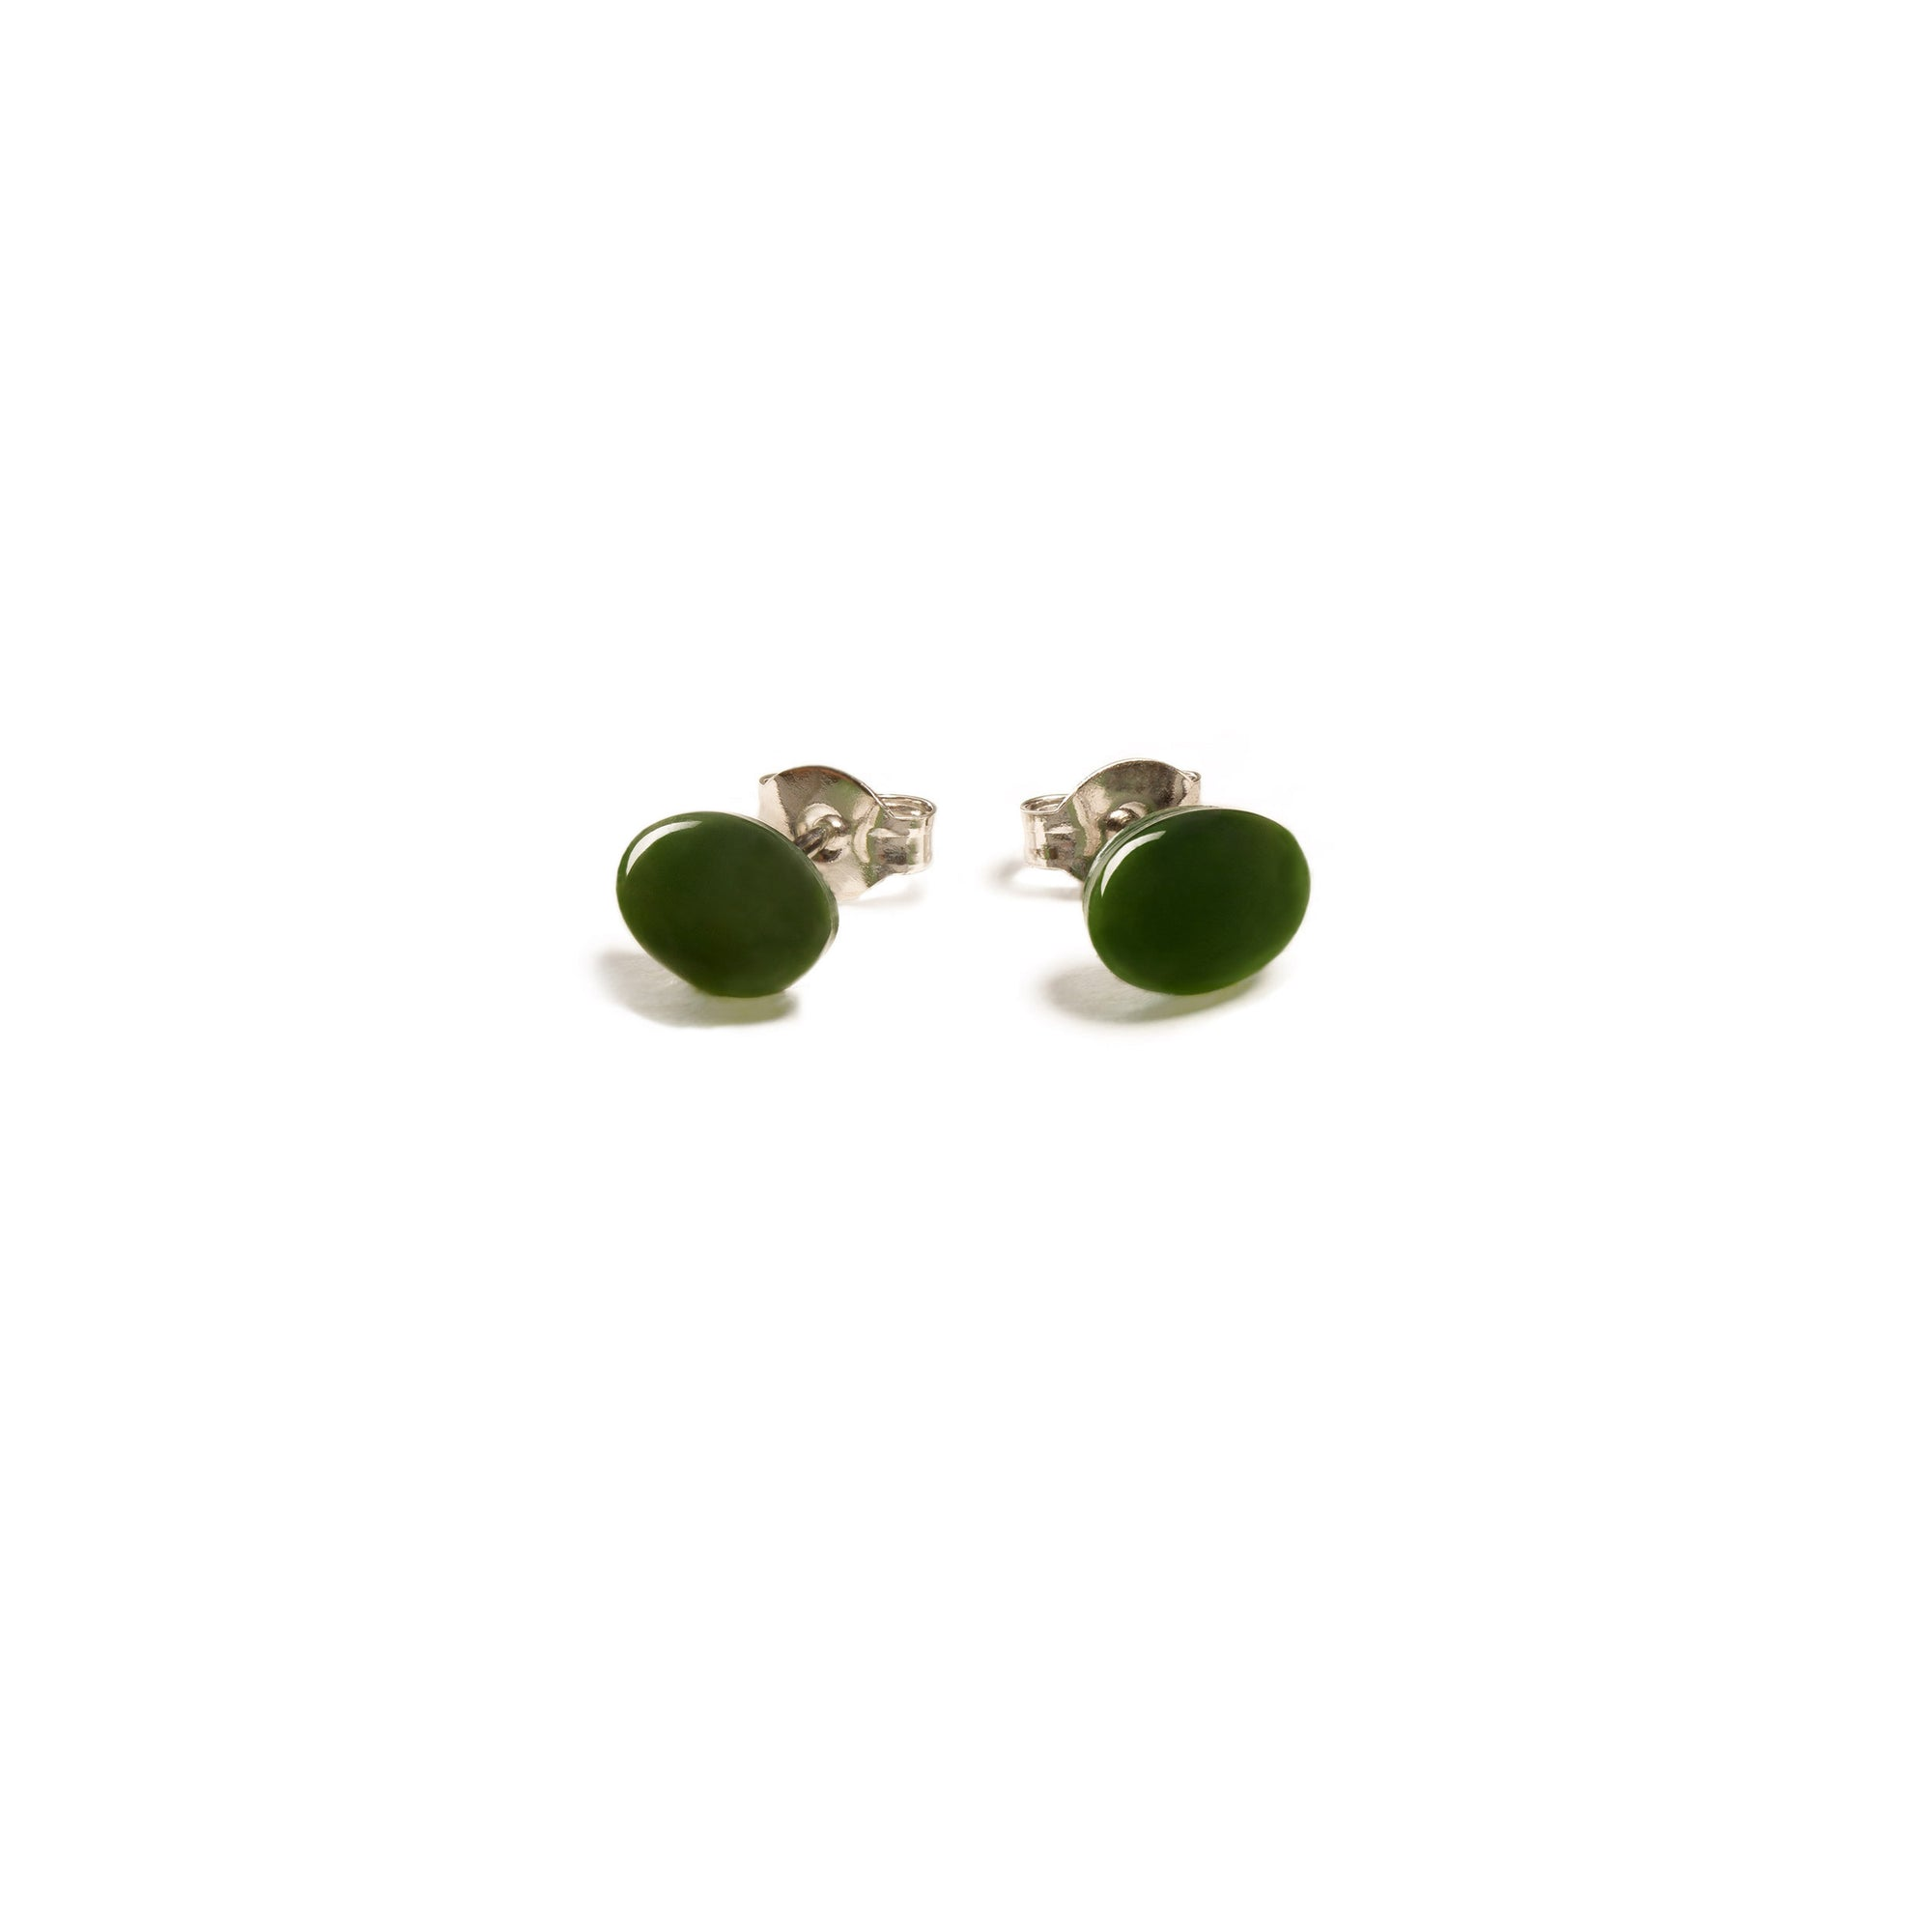 New Zealand Pounamu Oval Stud Earrings